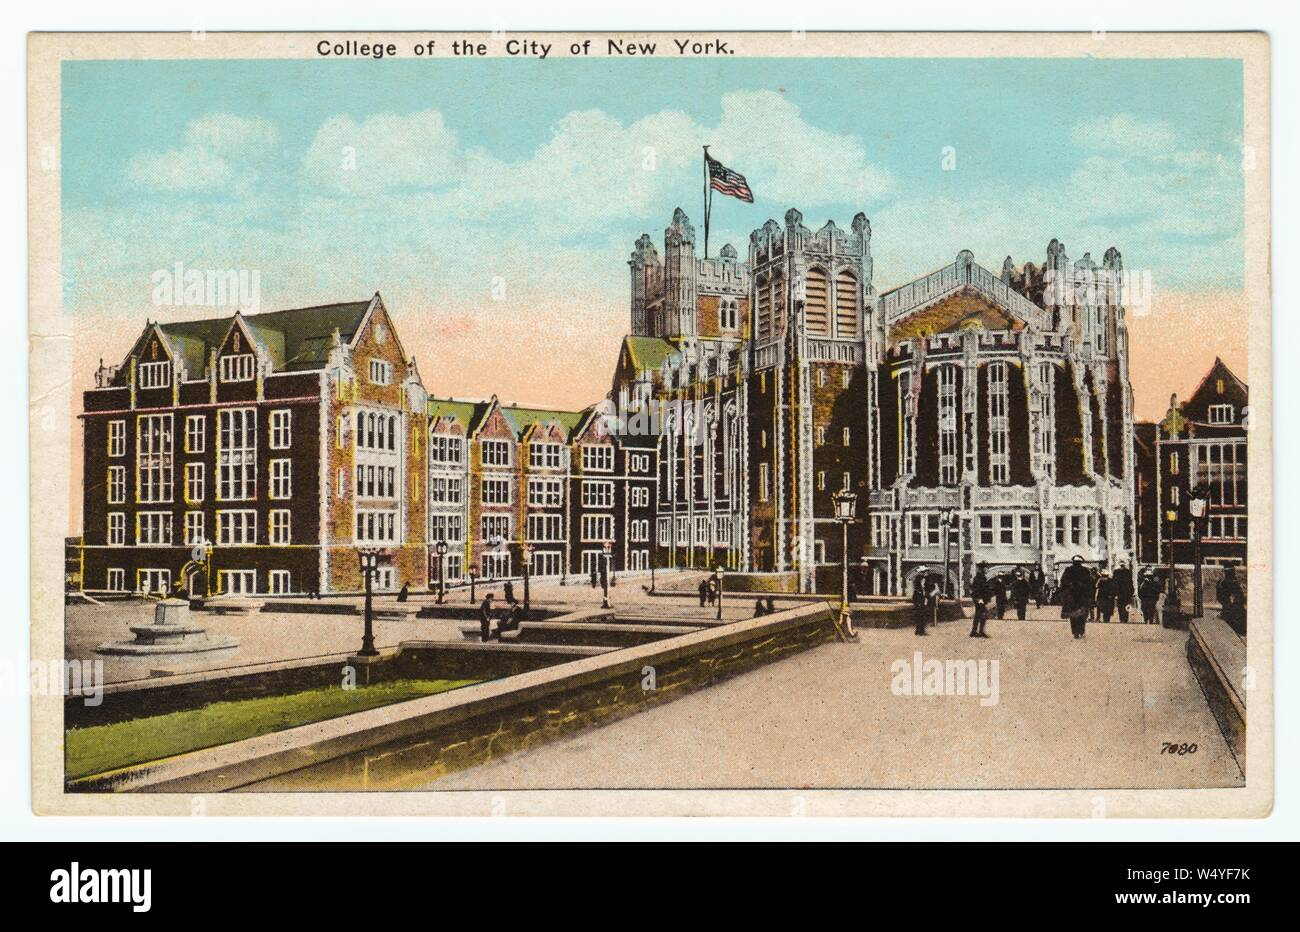 Art Colleges In New York >> Illustrated Postcard Of The College Of The City Of New York